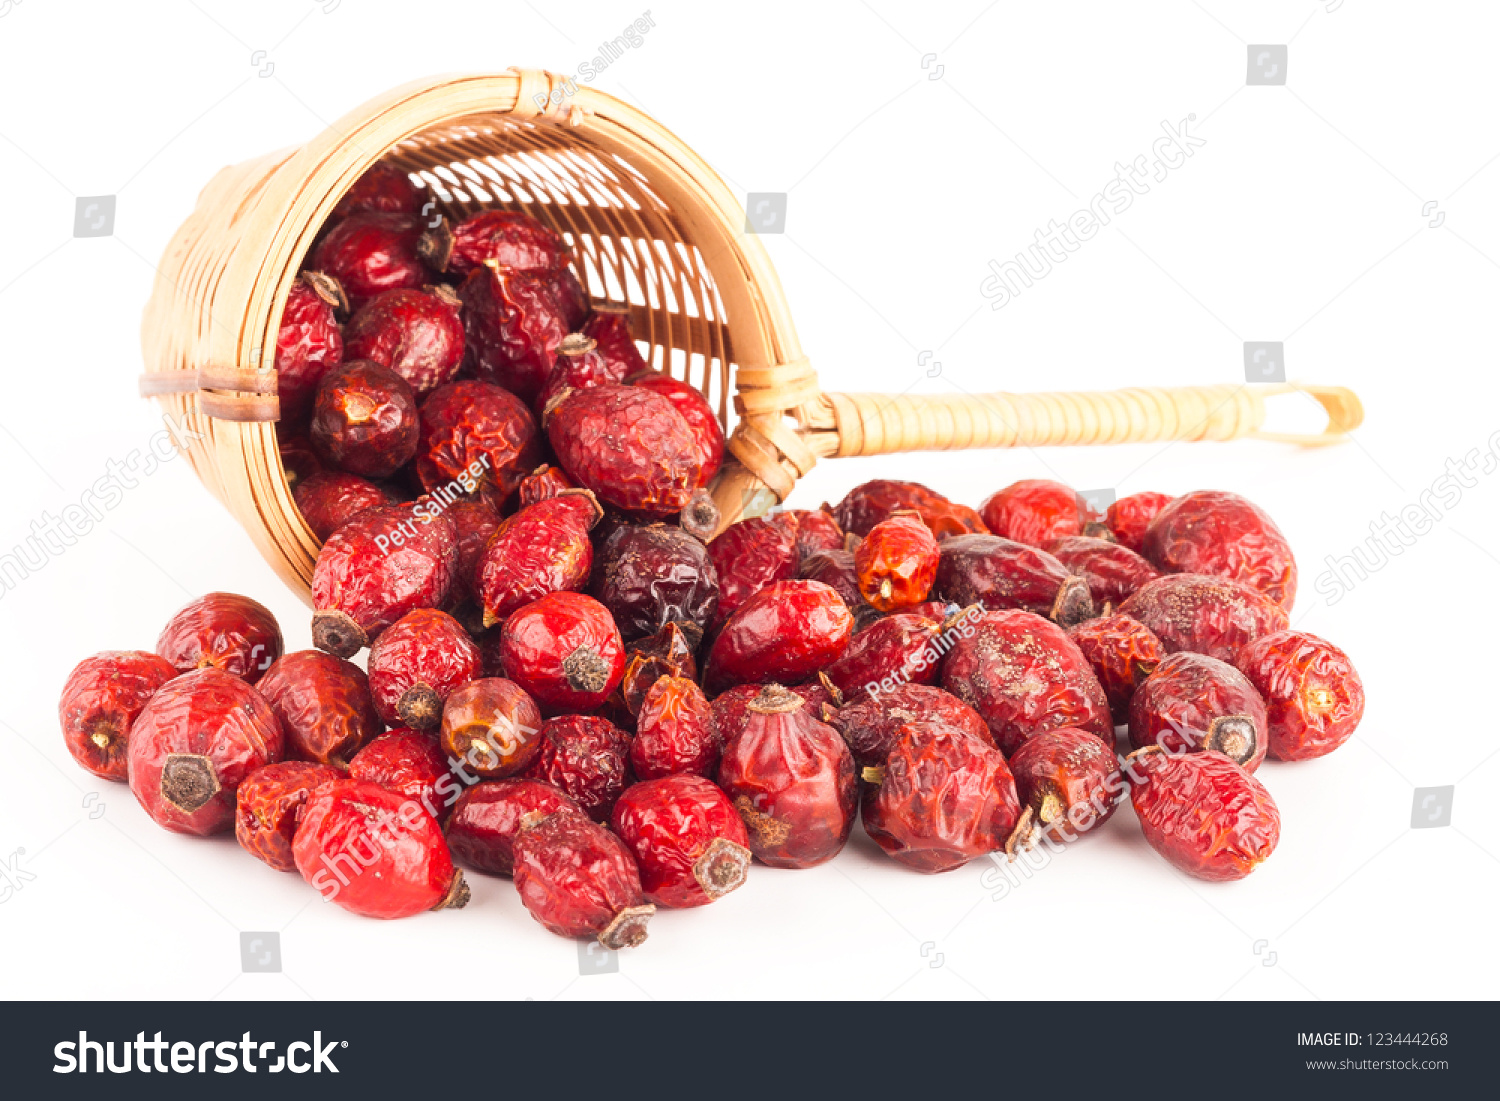 http://image.shutterstock.com/z/stock-photo-tea-strainer-with-dried-rose-hips-on-white-123444268.jpg